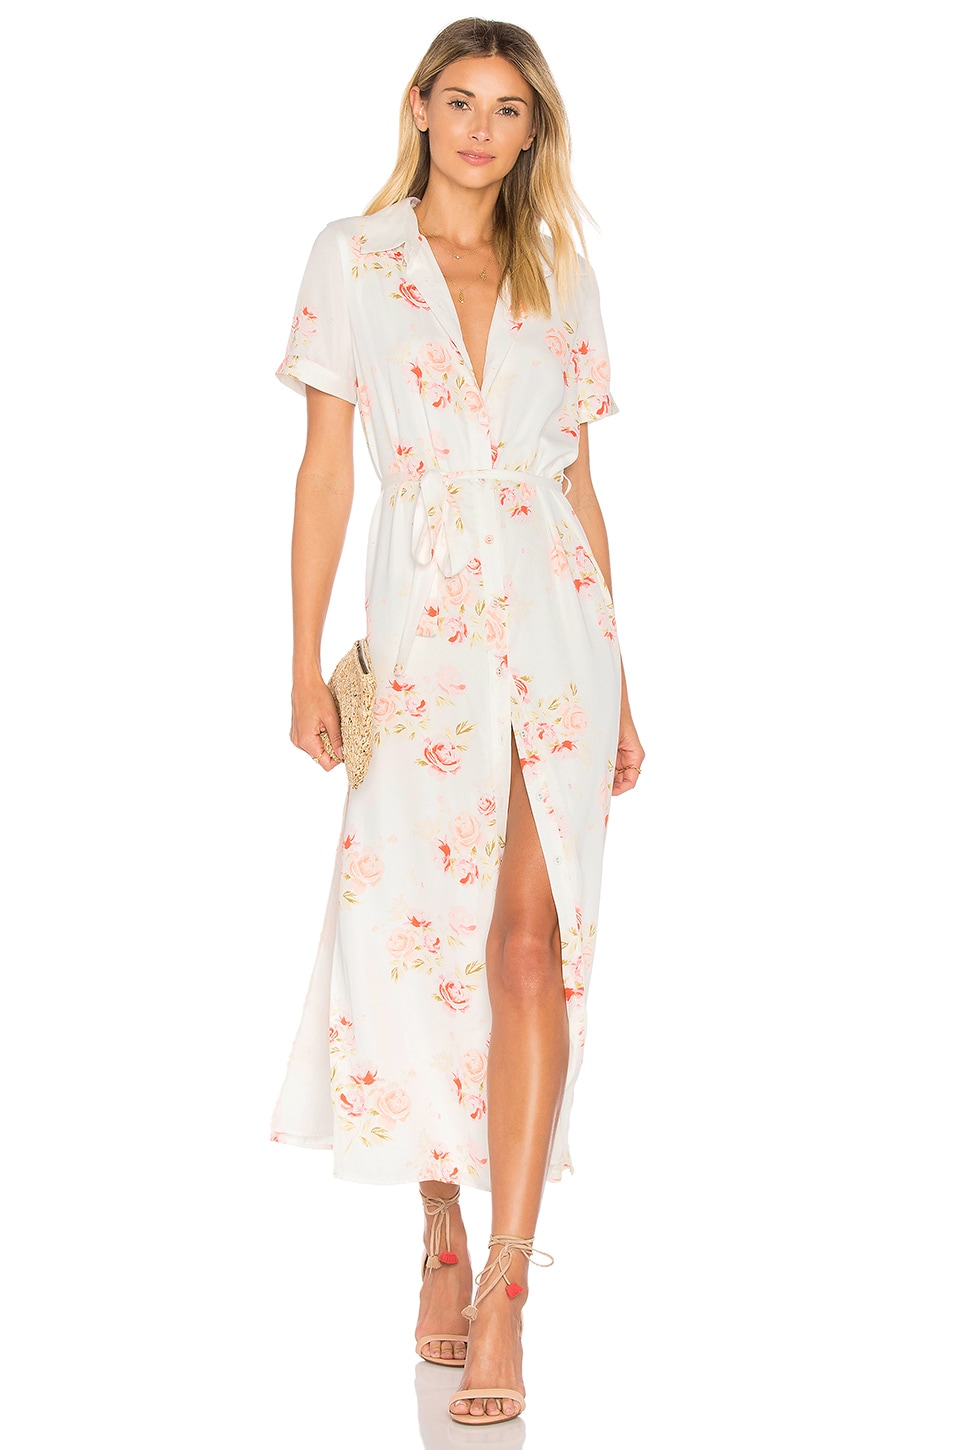 L'Academie The Maxi Shirt Dress in Peach Floral